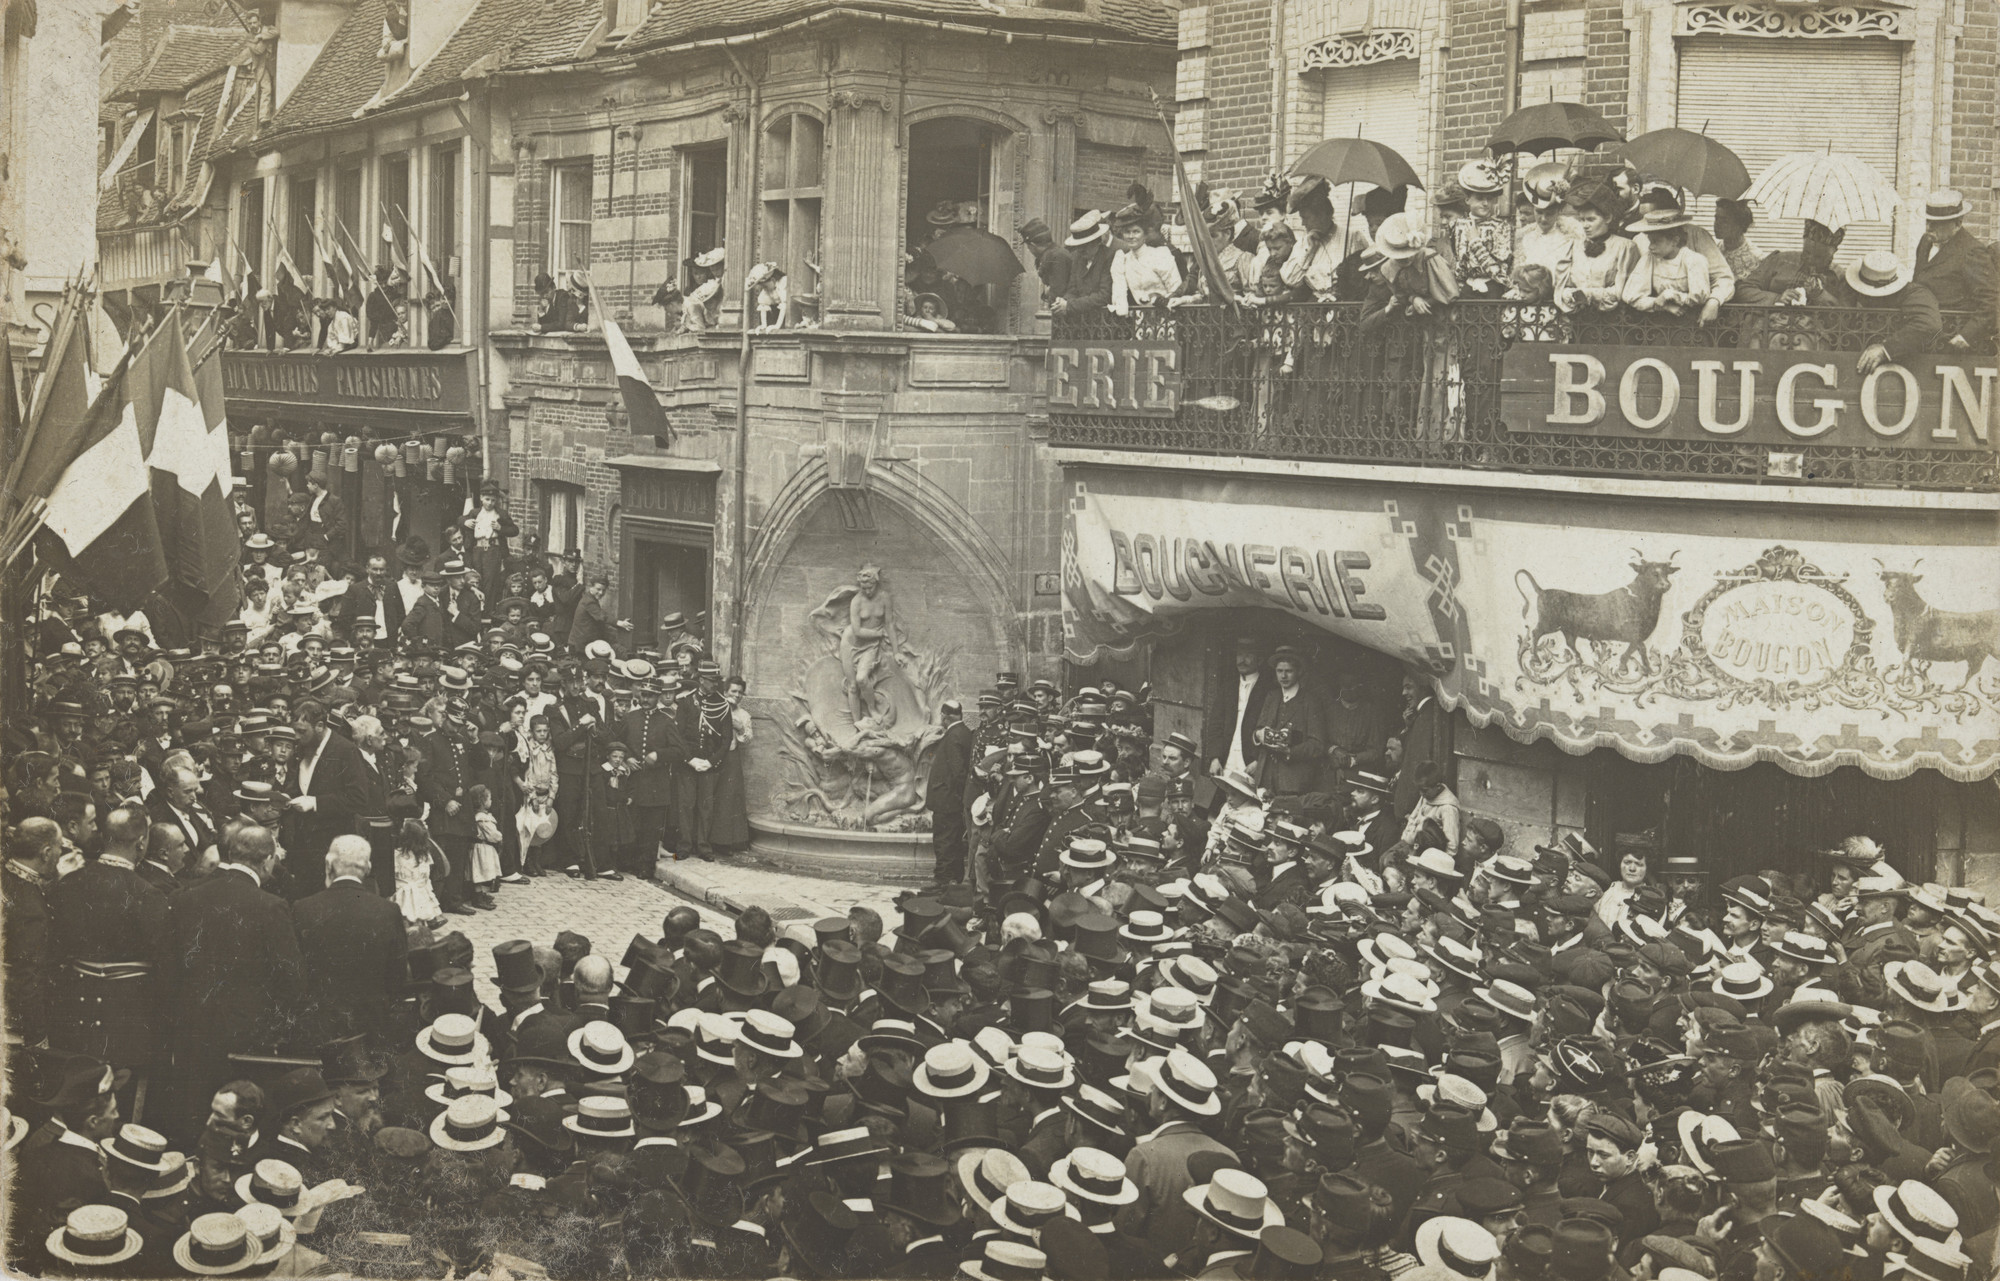 Unknown photographer. Boucherie, Maison Bougon, Fête devant la Fontaine des Amis des Arts, Rue de la Frette, Plaque Guilleminot. c. 1905